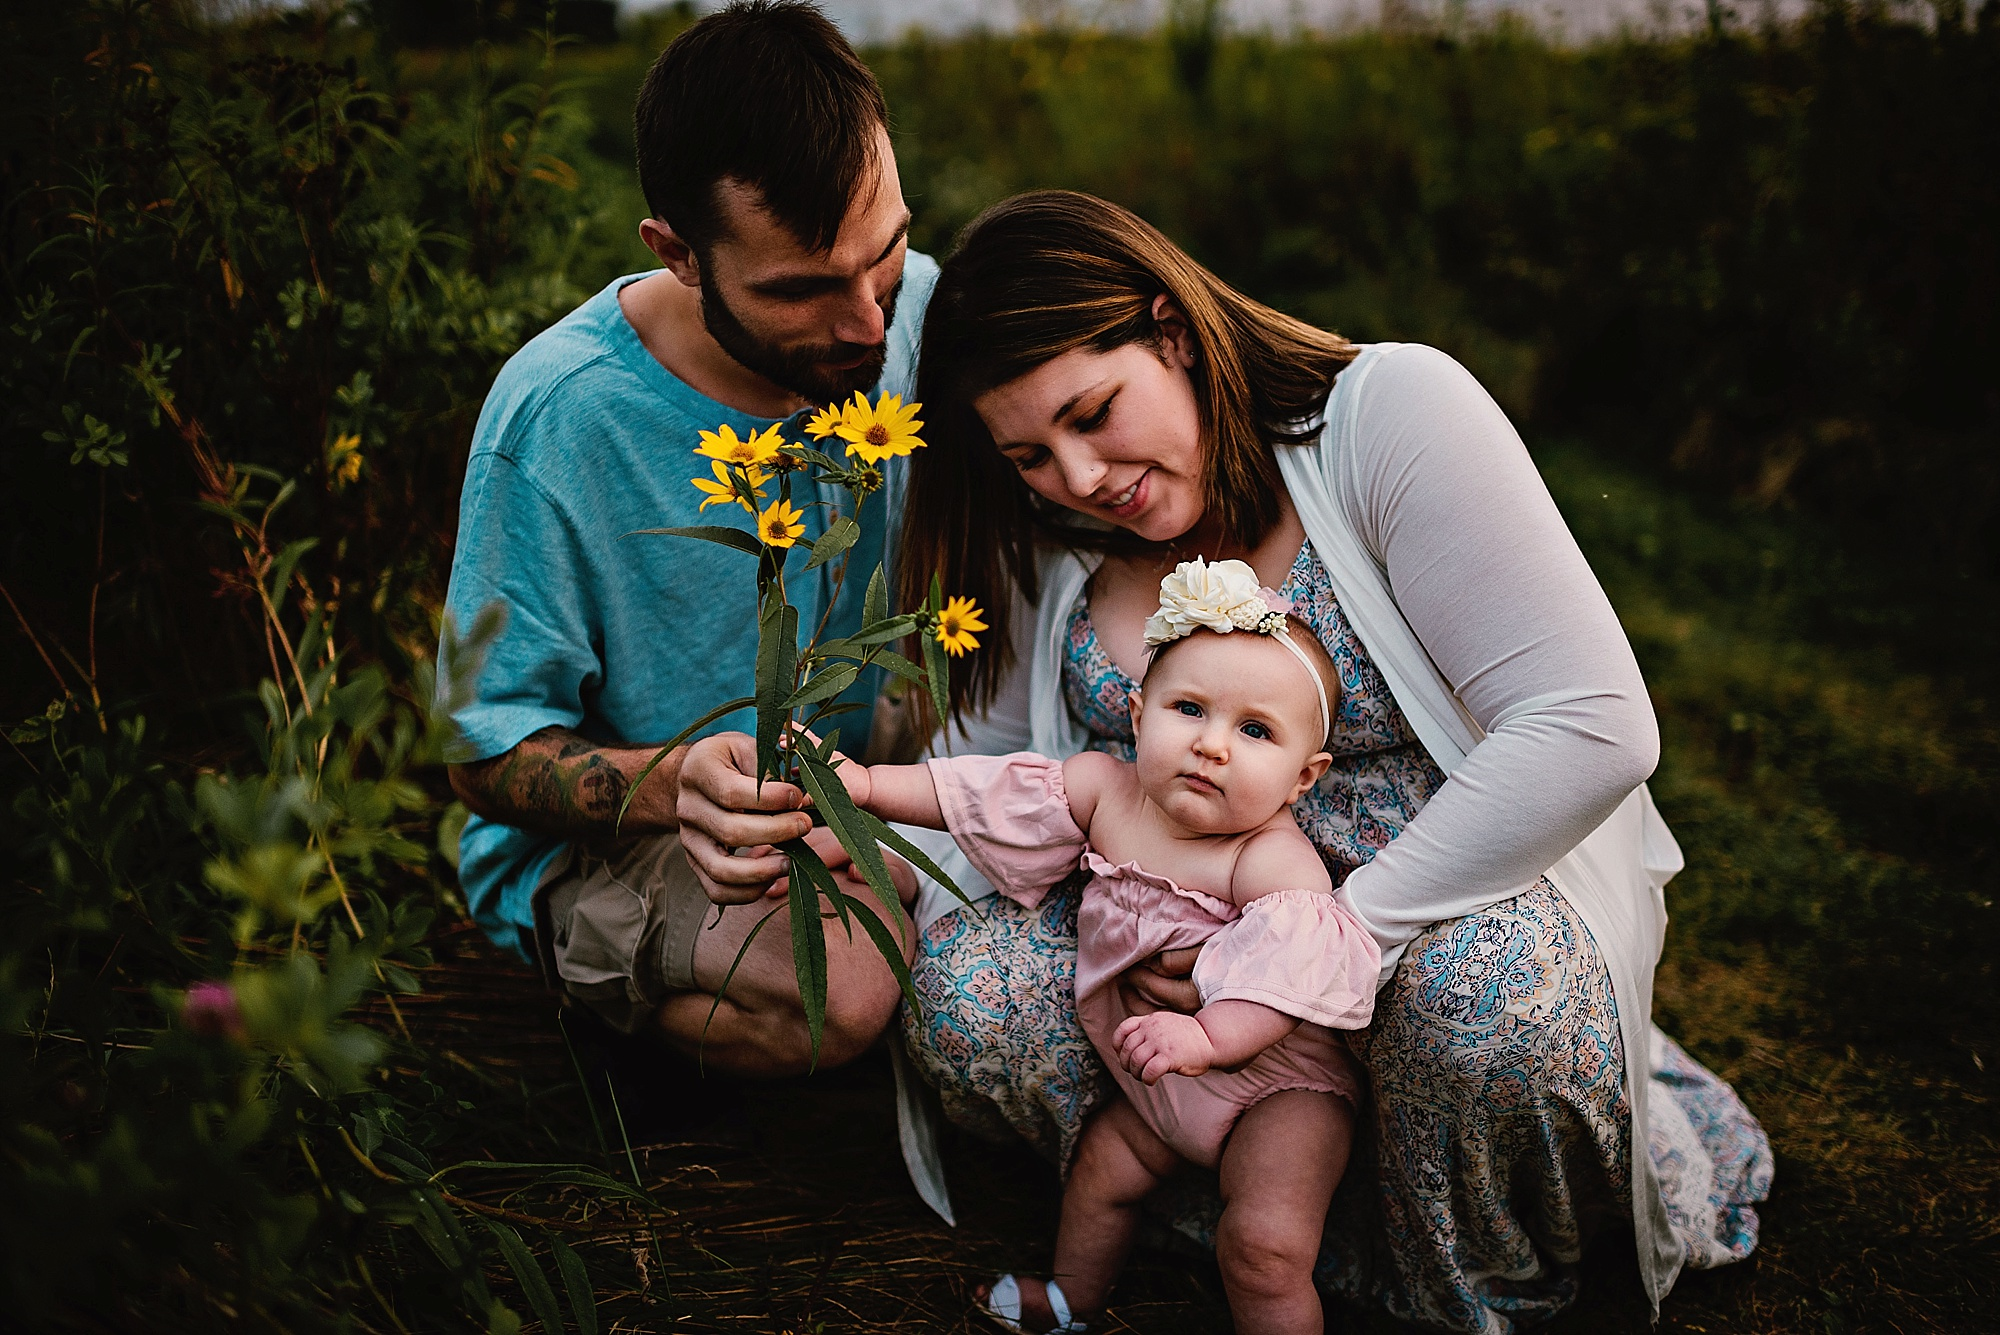 amber-lauren-grayson-photography-springfield-bog-akron-ohio-family-photographer_0016.jpg